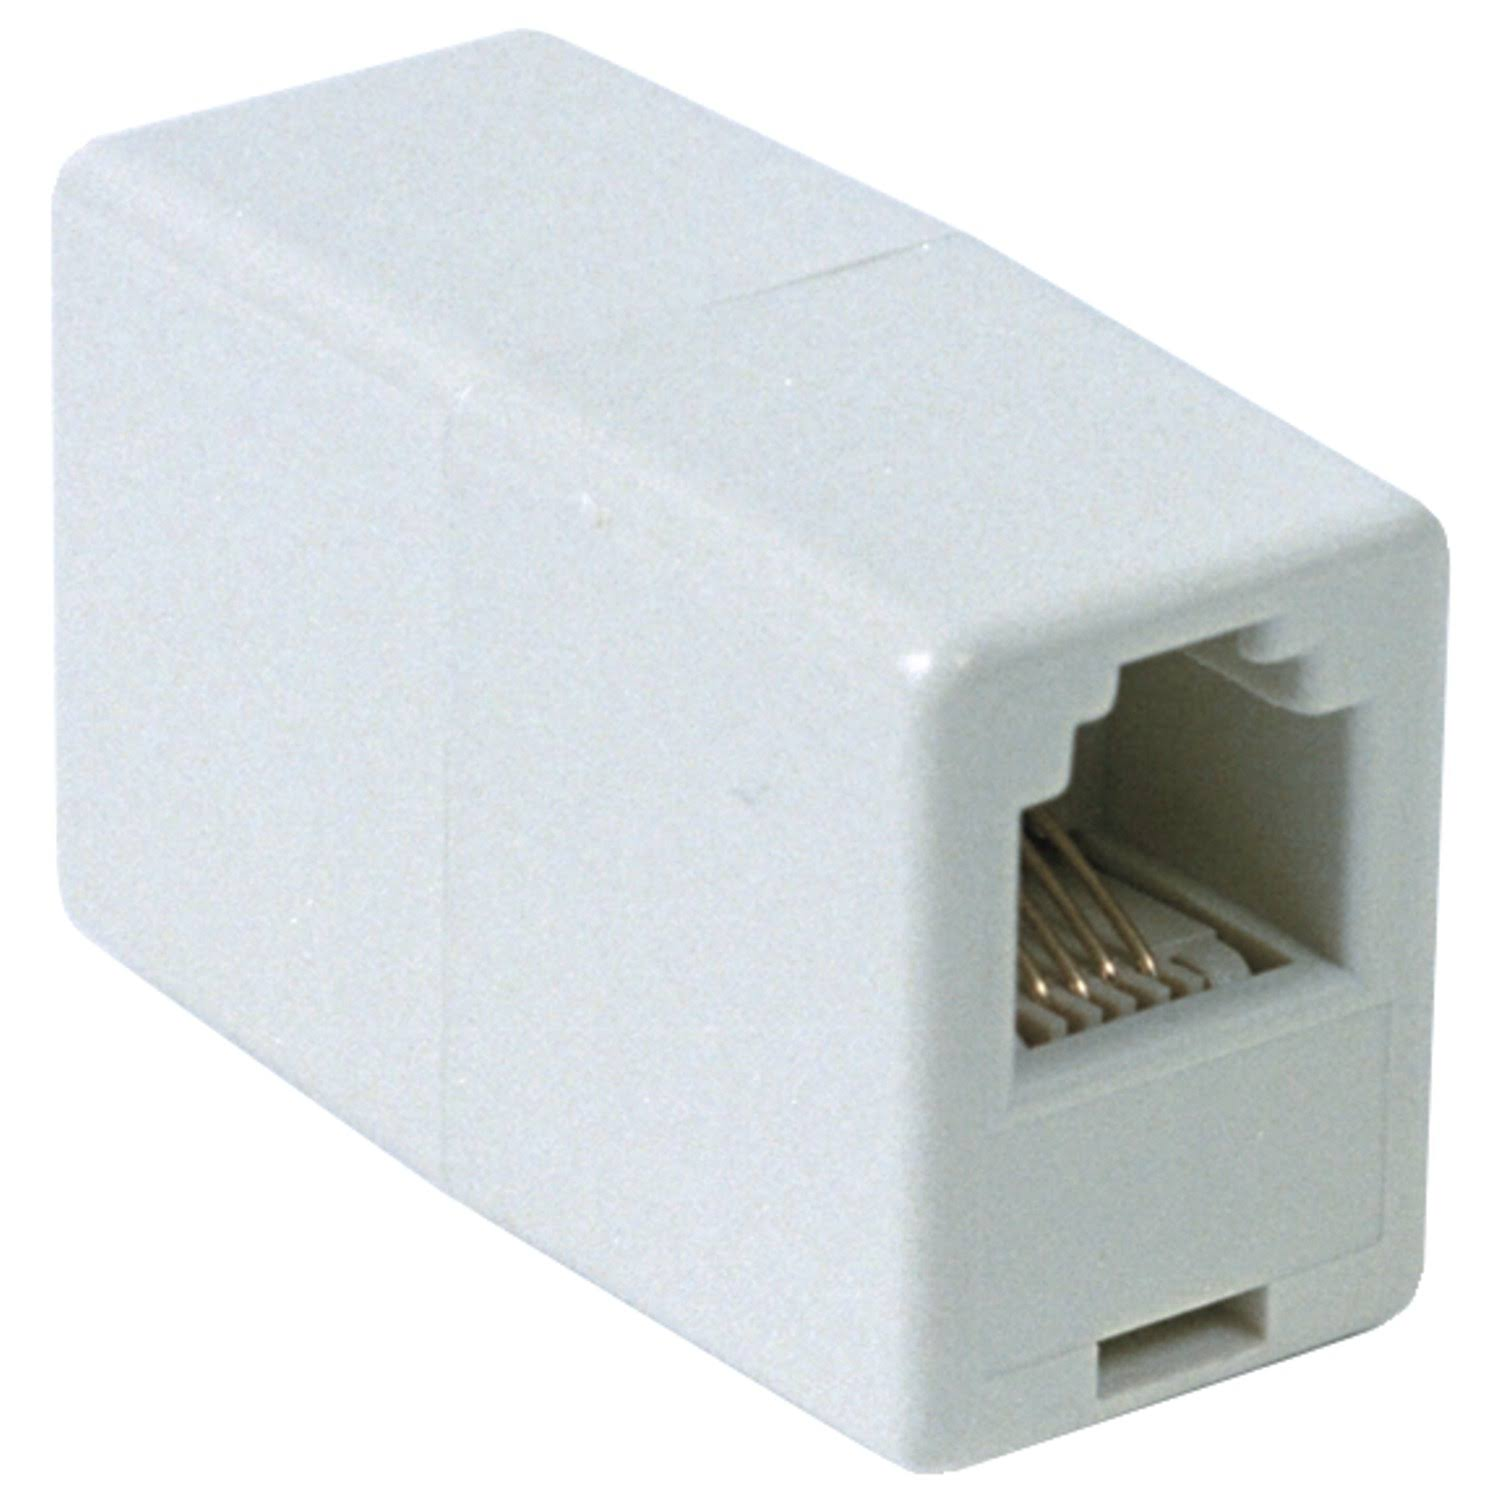 Rca In Line Cord Coupler - White